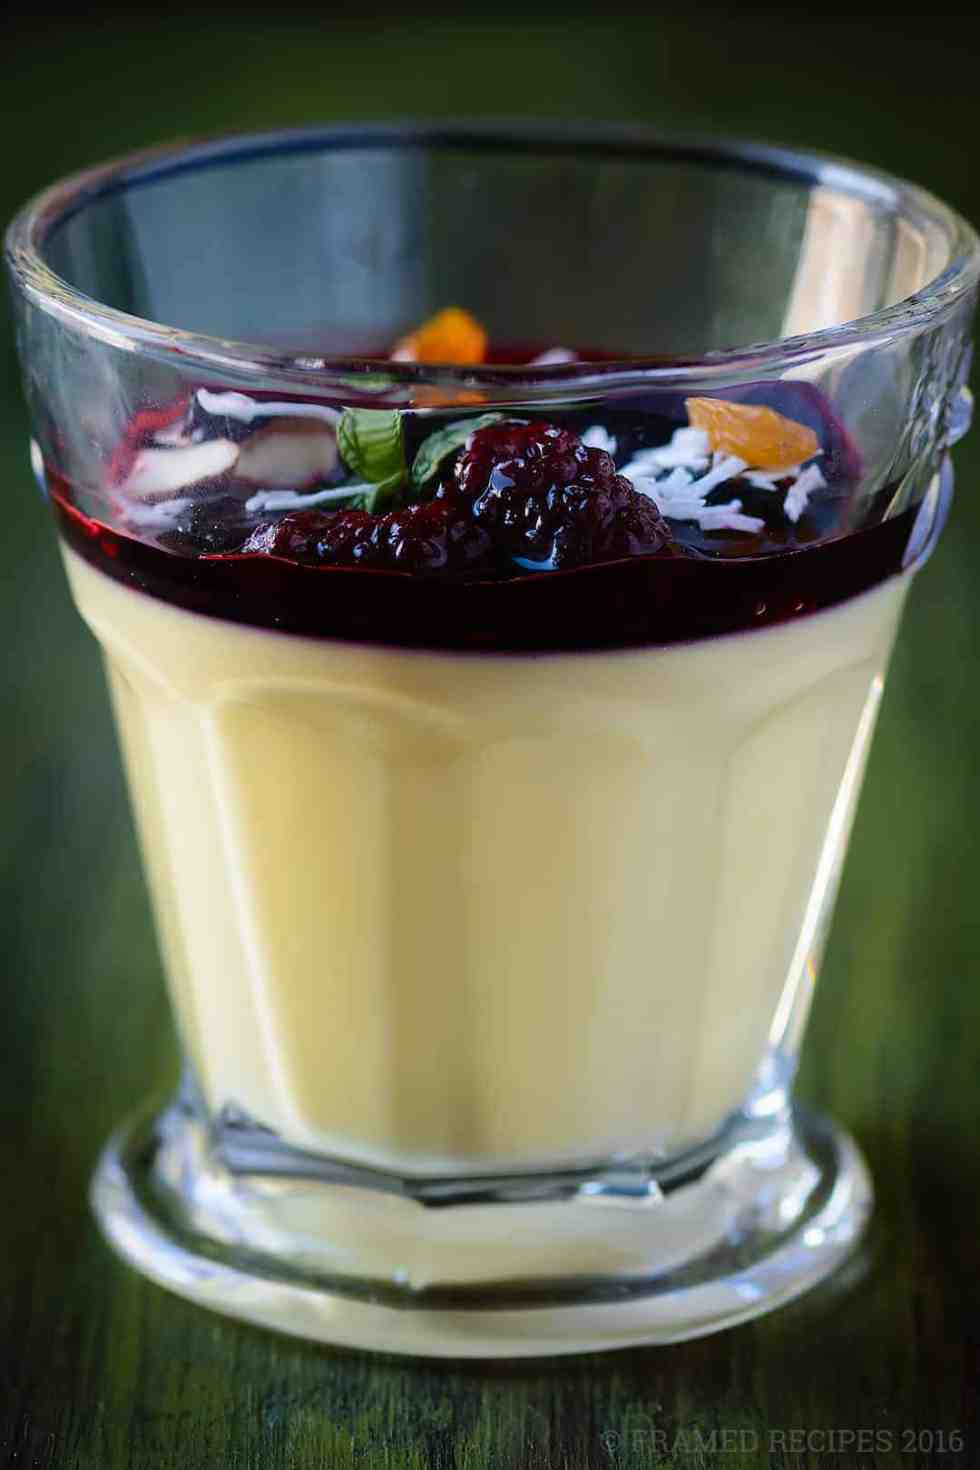 Rose and Saffron Panna Cotta with Berry Compote